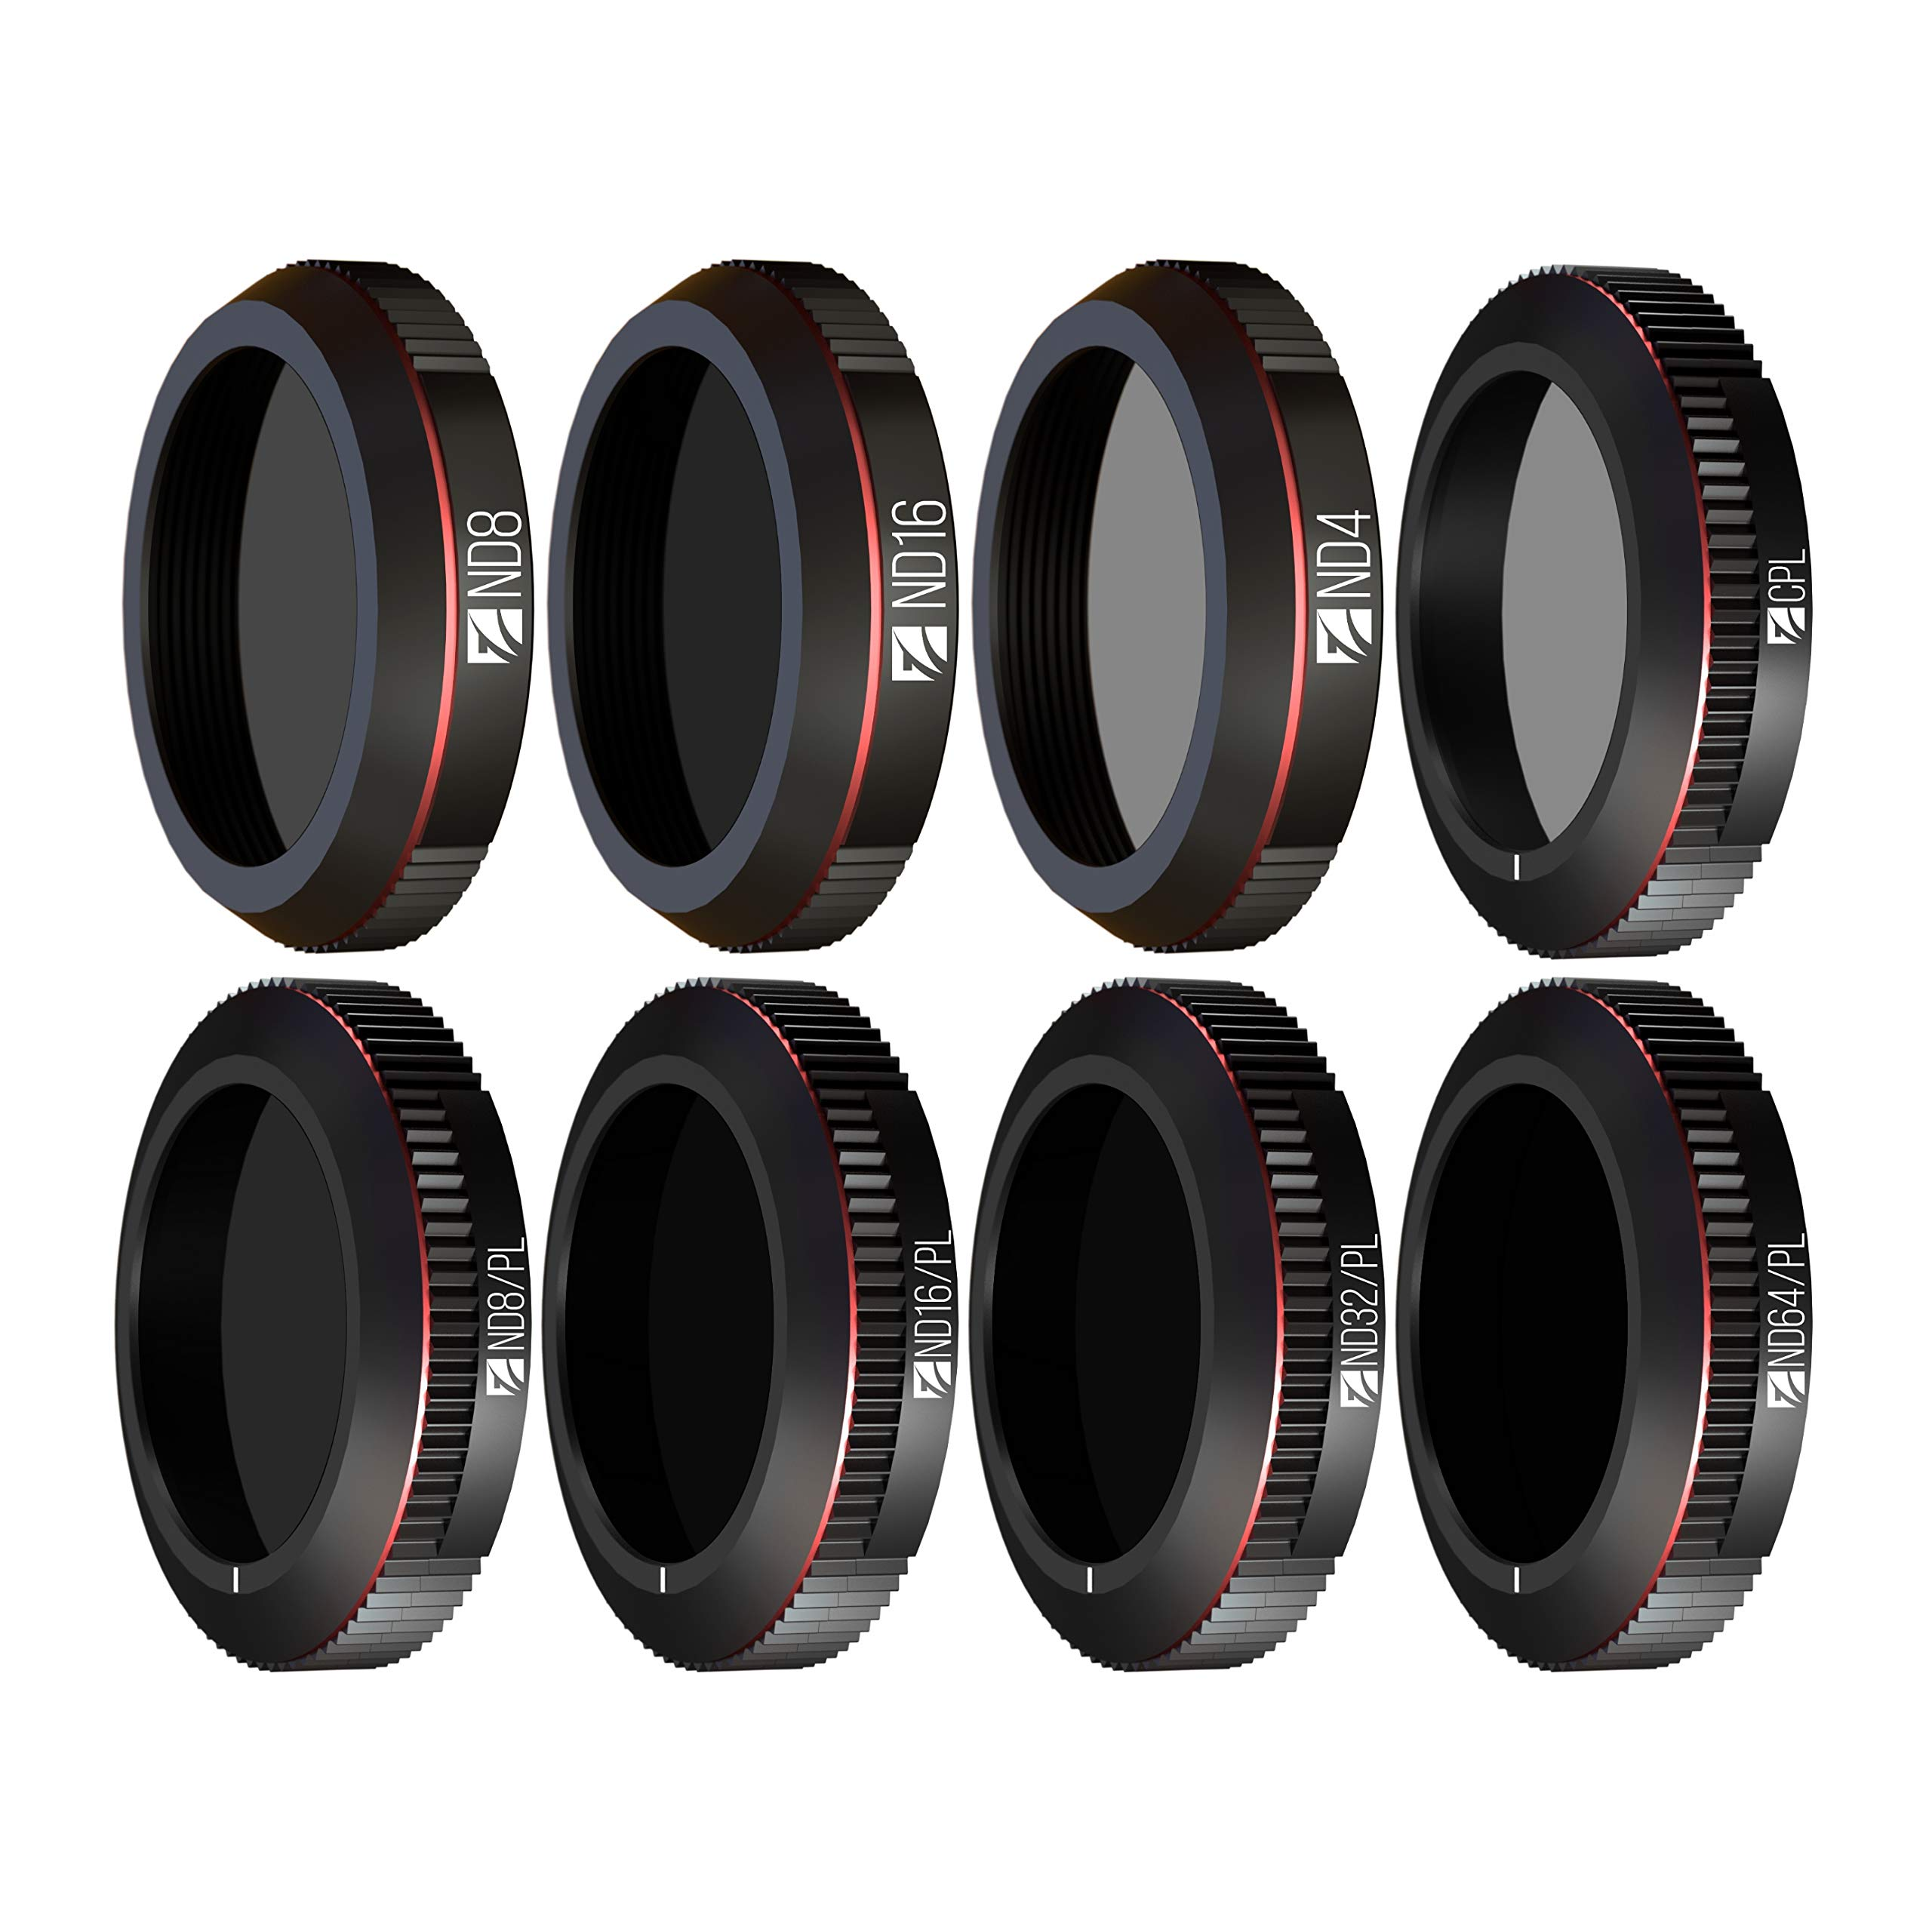 Freewell All Day - 4K Series - 8Pack ND4, ND8, ND16, CPL, ND8/PL, ND16/PL, ND32/PL , ND64/PL Filters Compatible with DJI Mavic 2 Zoom / Enterprise by Freewell